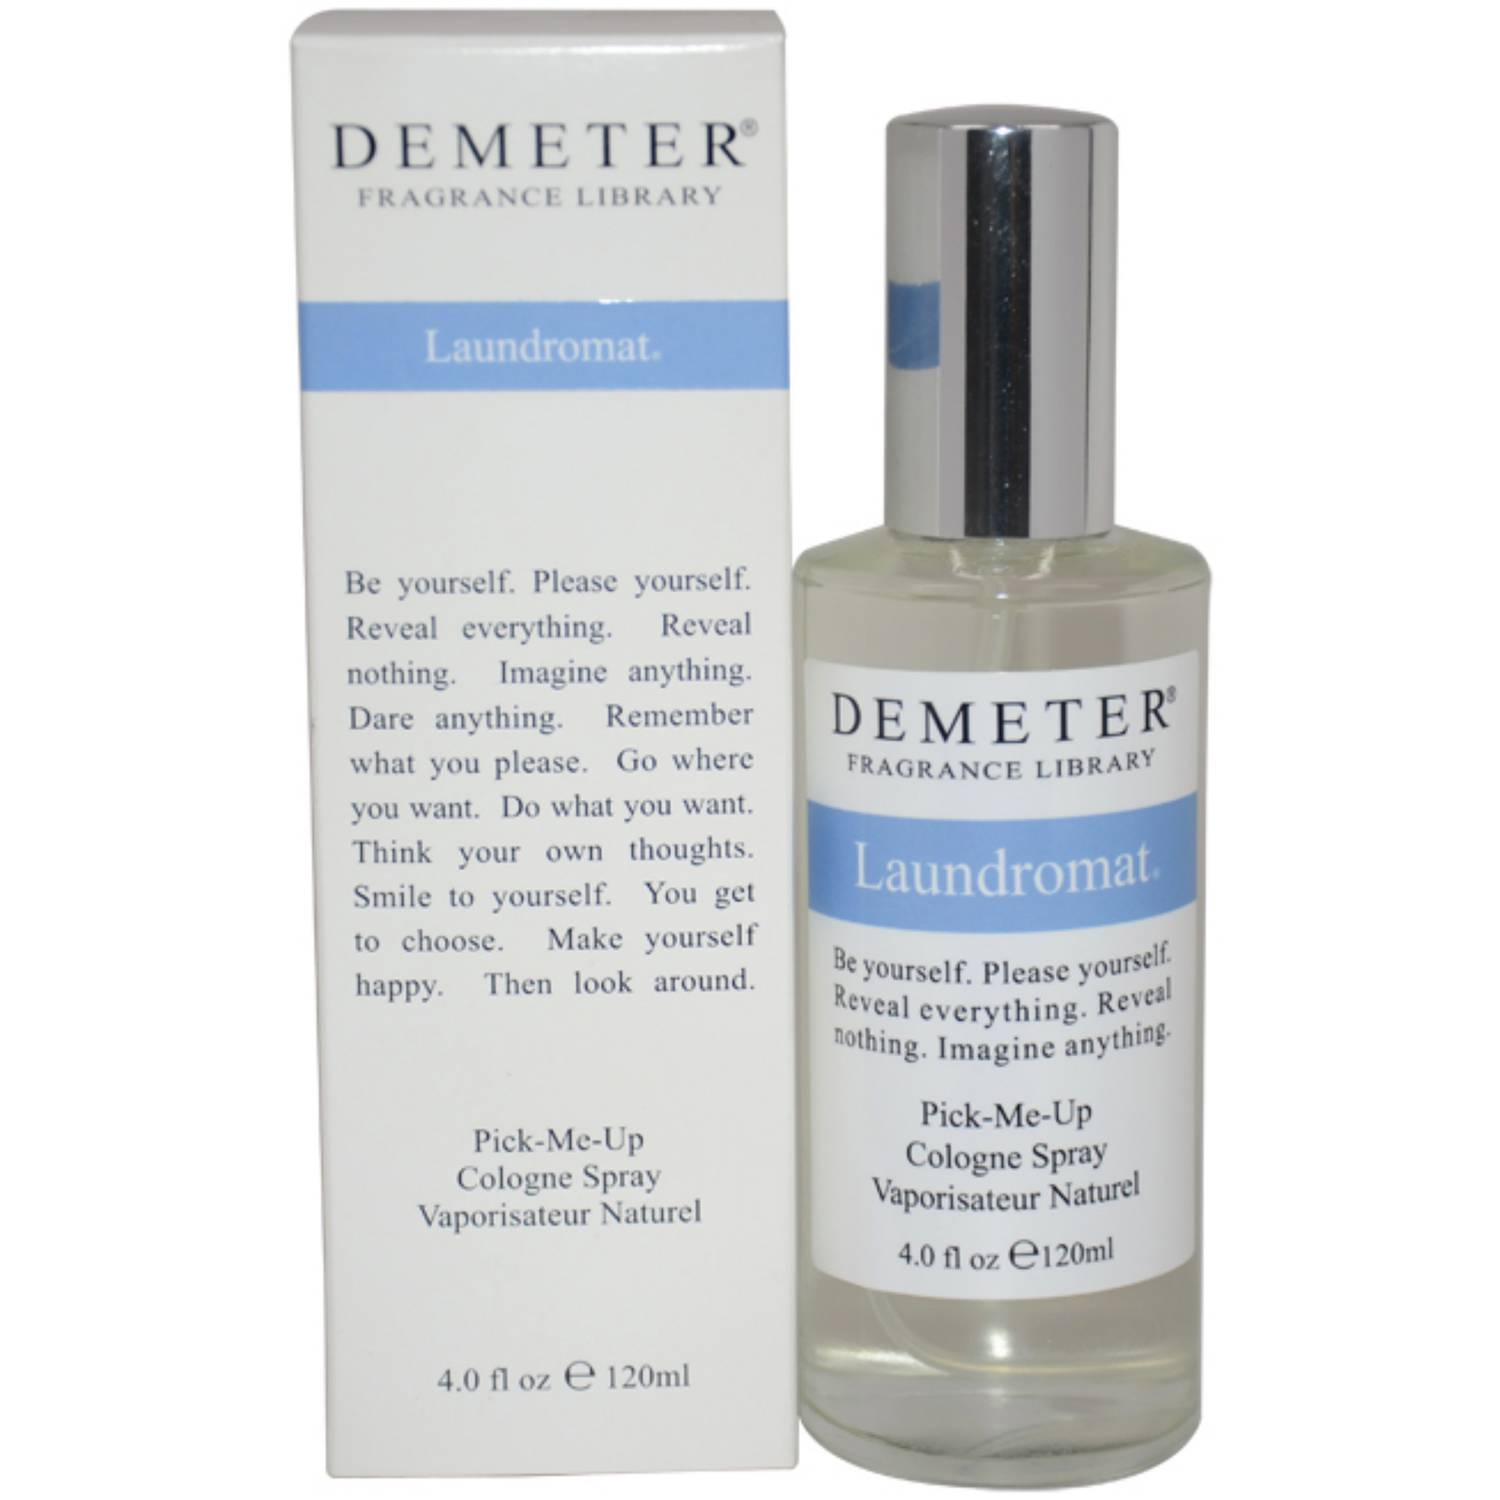 Laundromat by Demeter for Women Cologne Spray, 4 oz